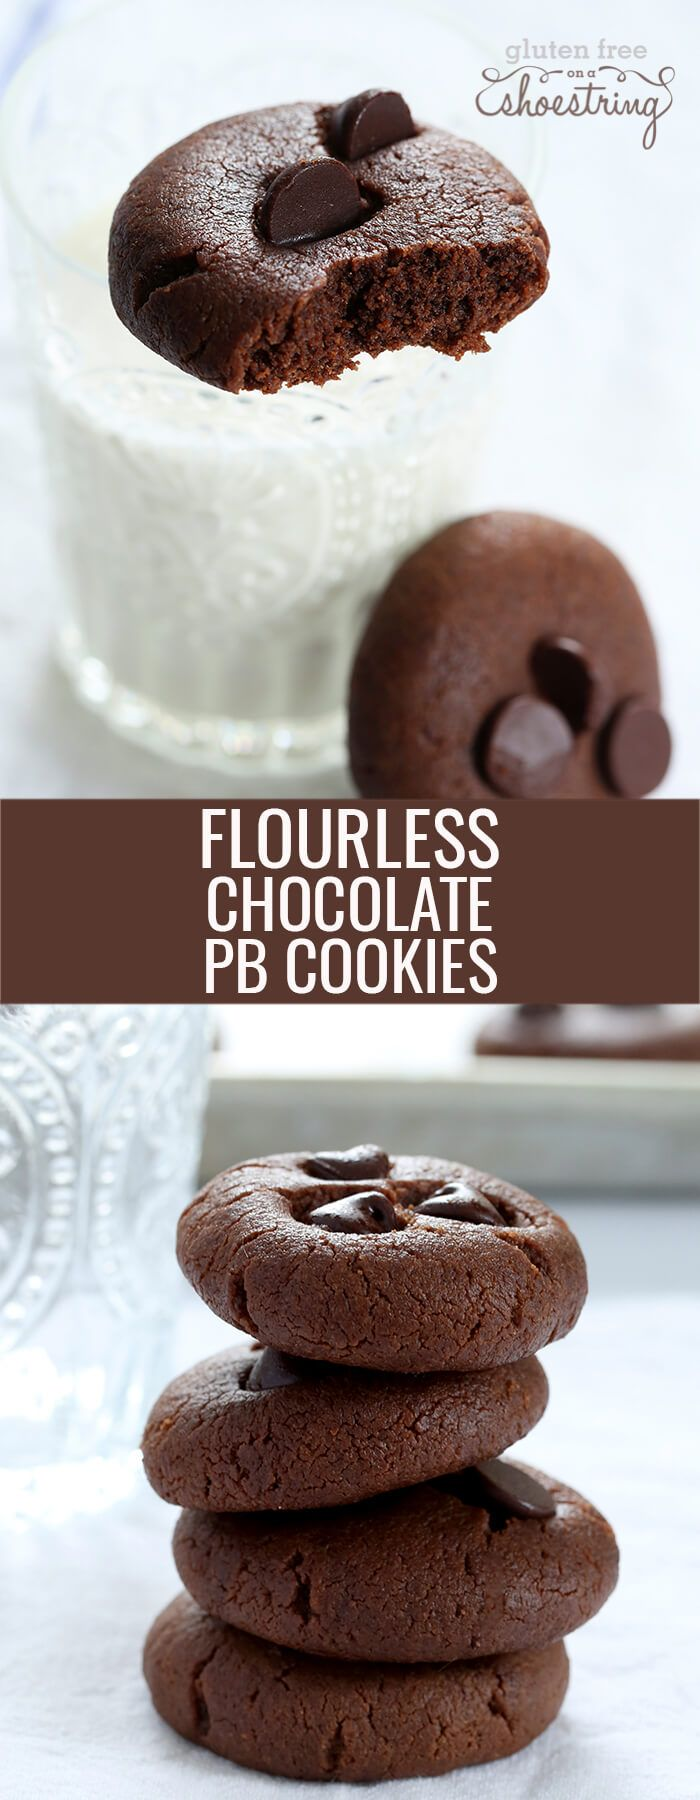 These flourless peanut butter cookies are gluten free, grain free, dairy free, packed with protein and a great start to the day!